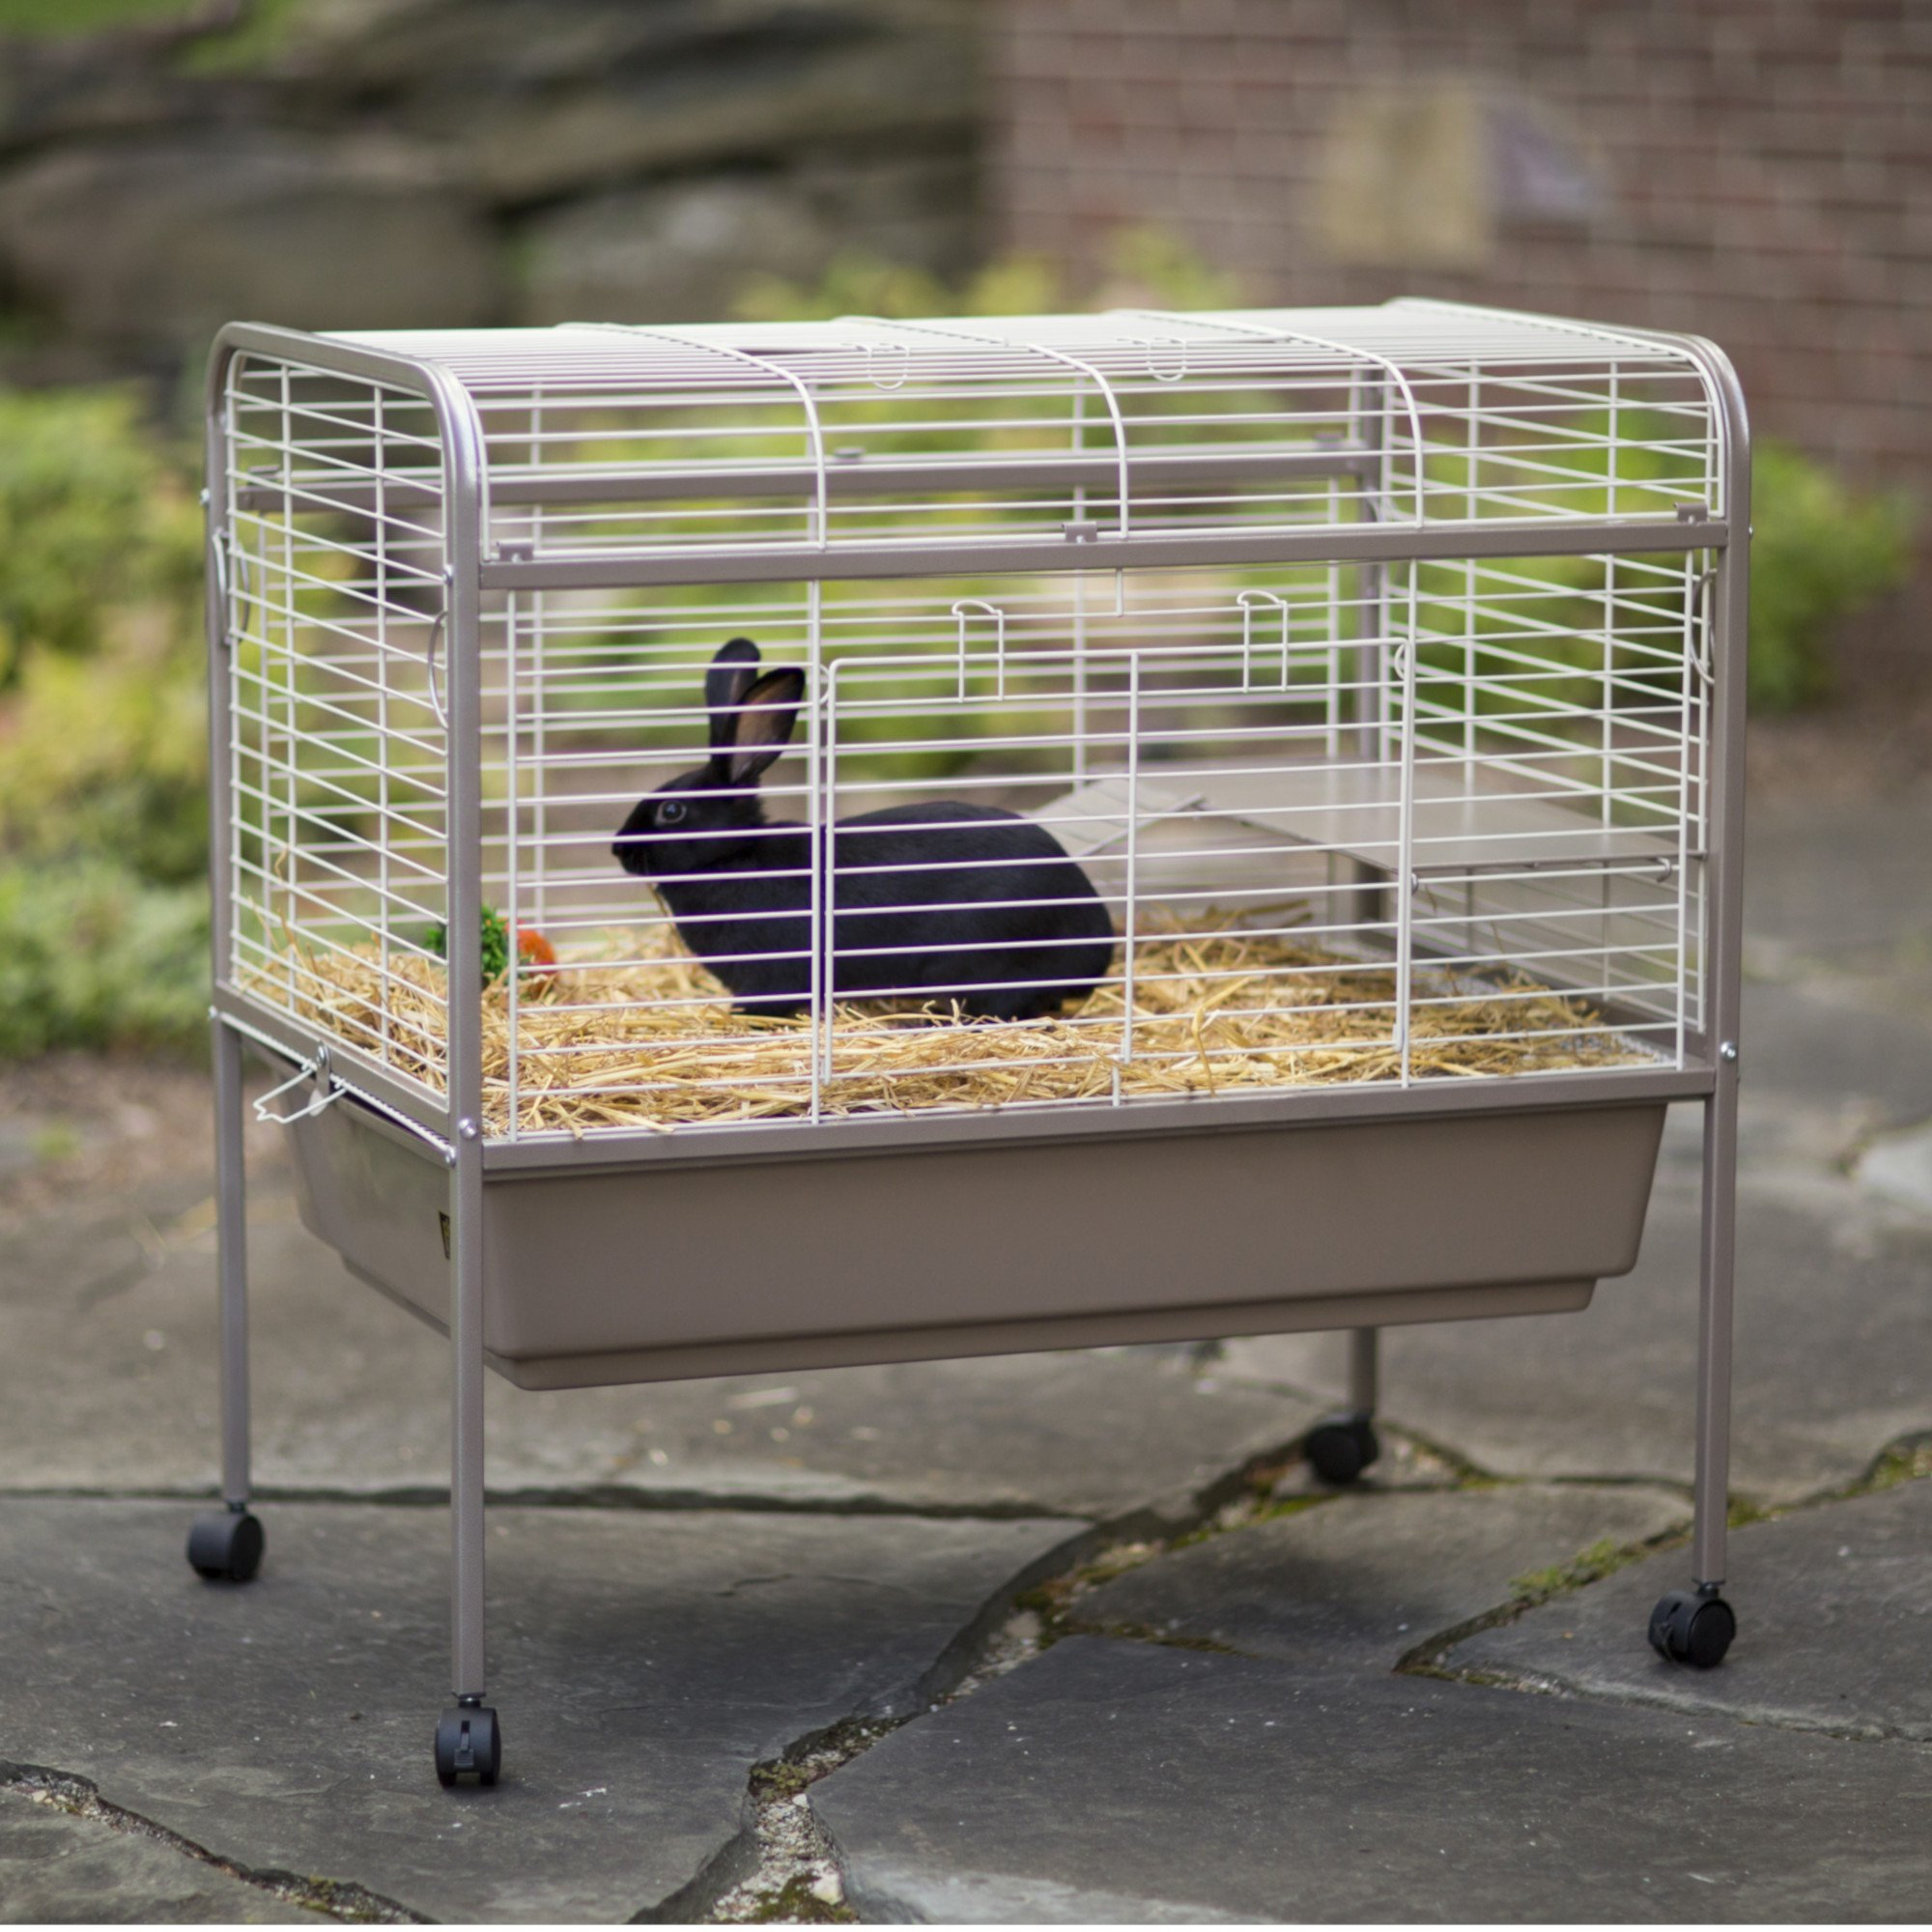 Prevue Pet Products Cocoa & Cream Small Animal Cage with